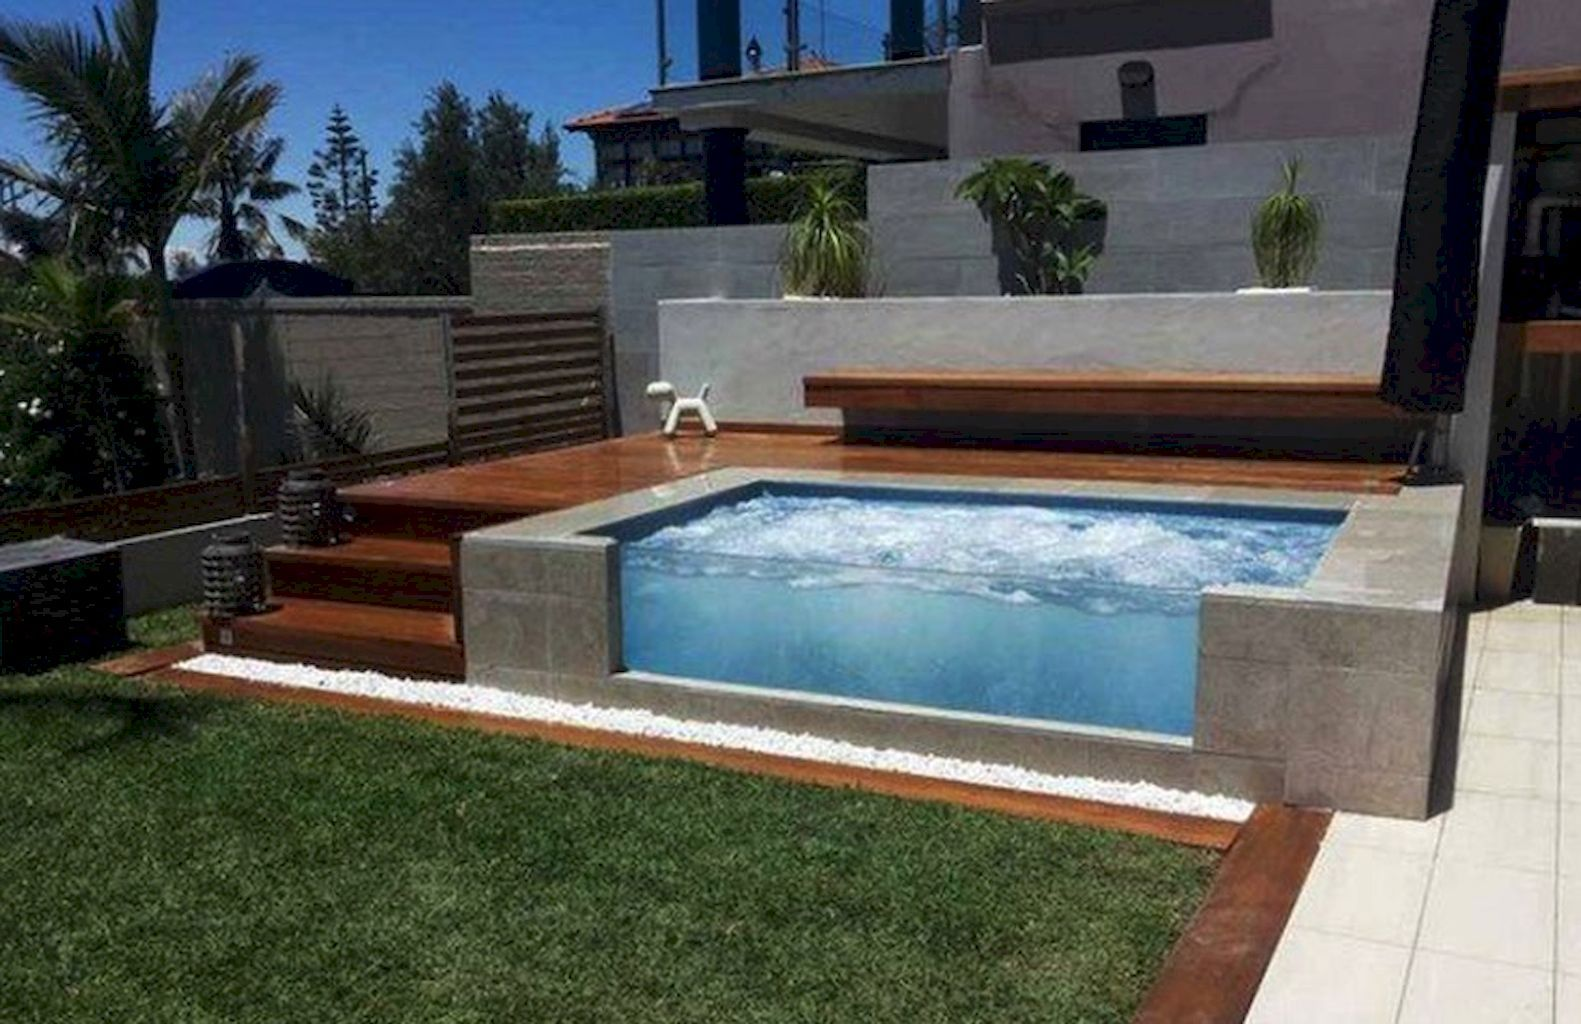 Outdoor Pool Decor Ideas 60 Incredible Ground Pool Decorating Ideas Home Decor In